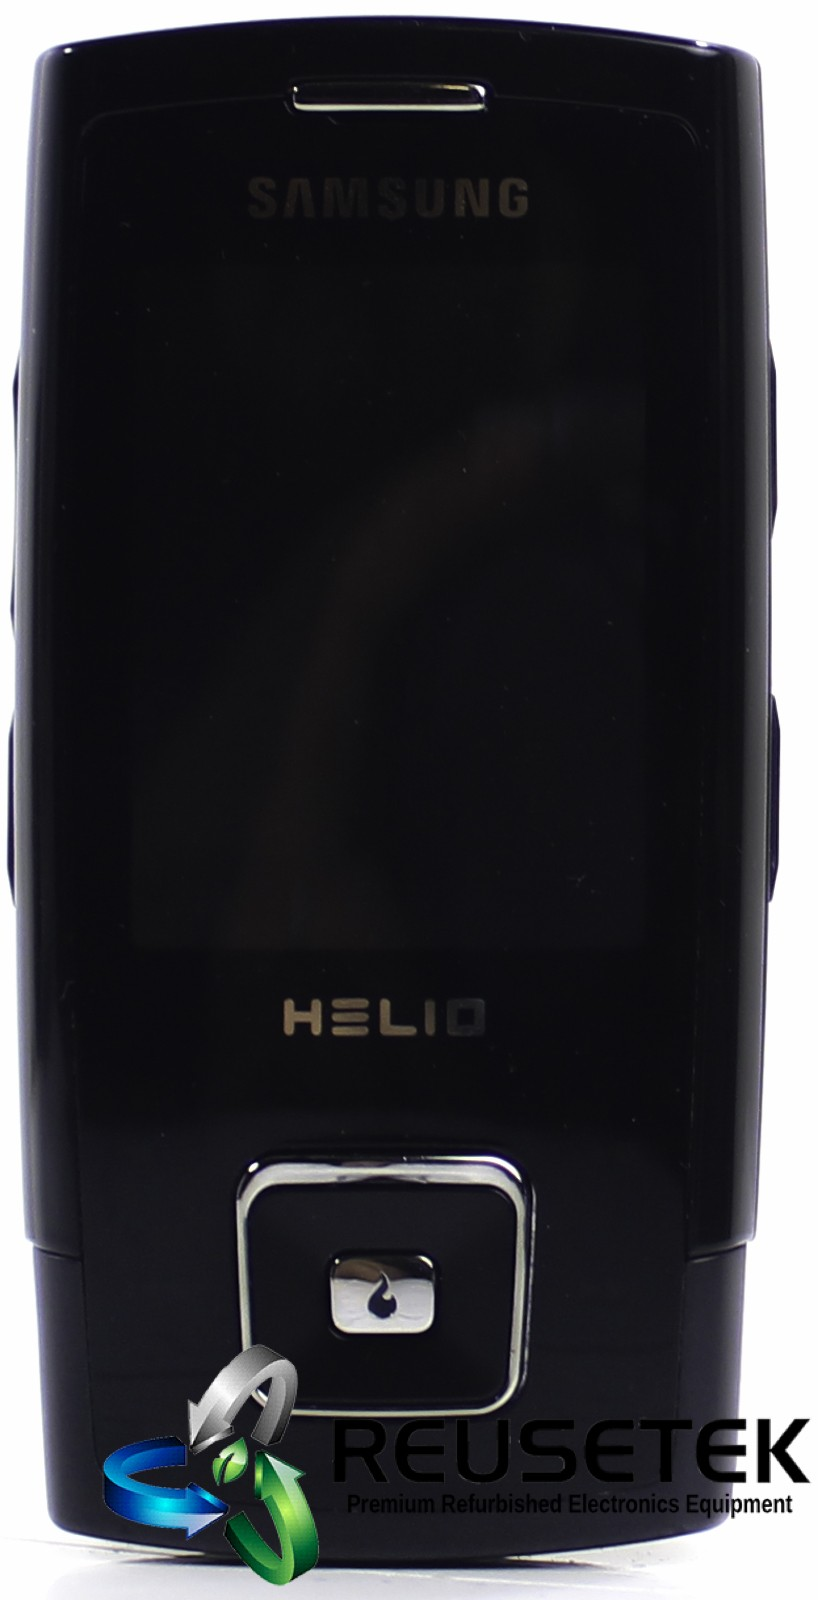 5000317696079910-Samsung SPH-A523 Helio Mysto Virgin Mobile Cell Phone-image